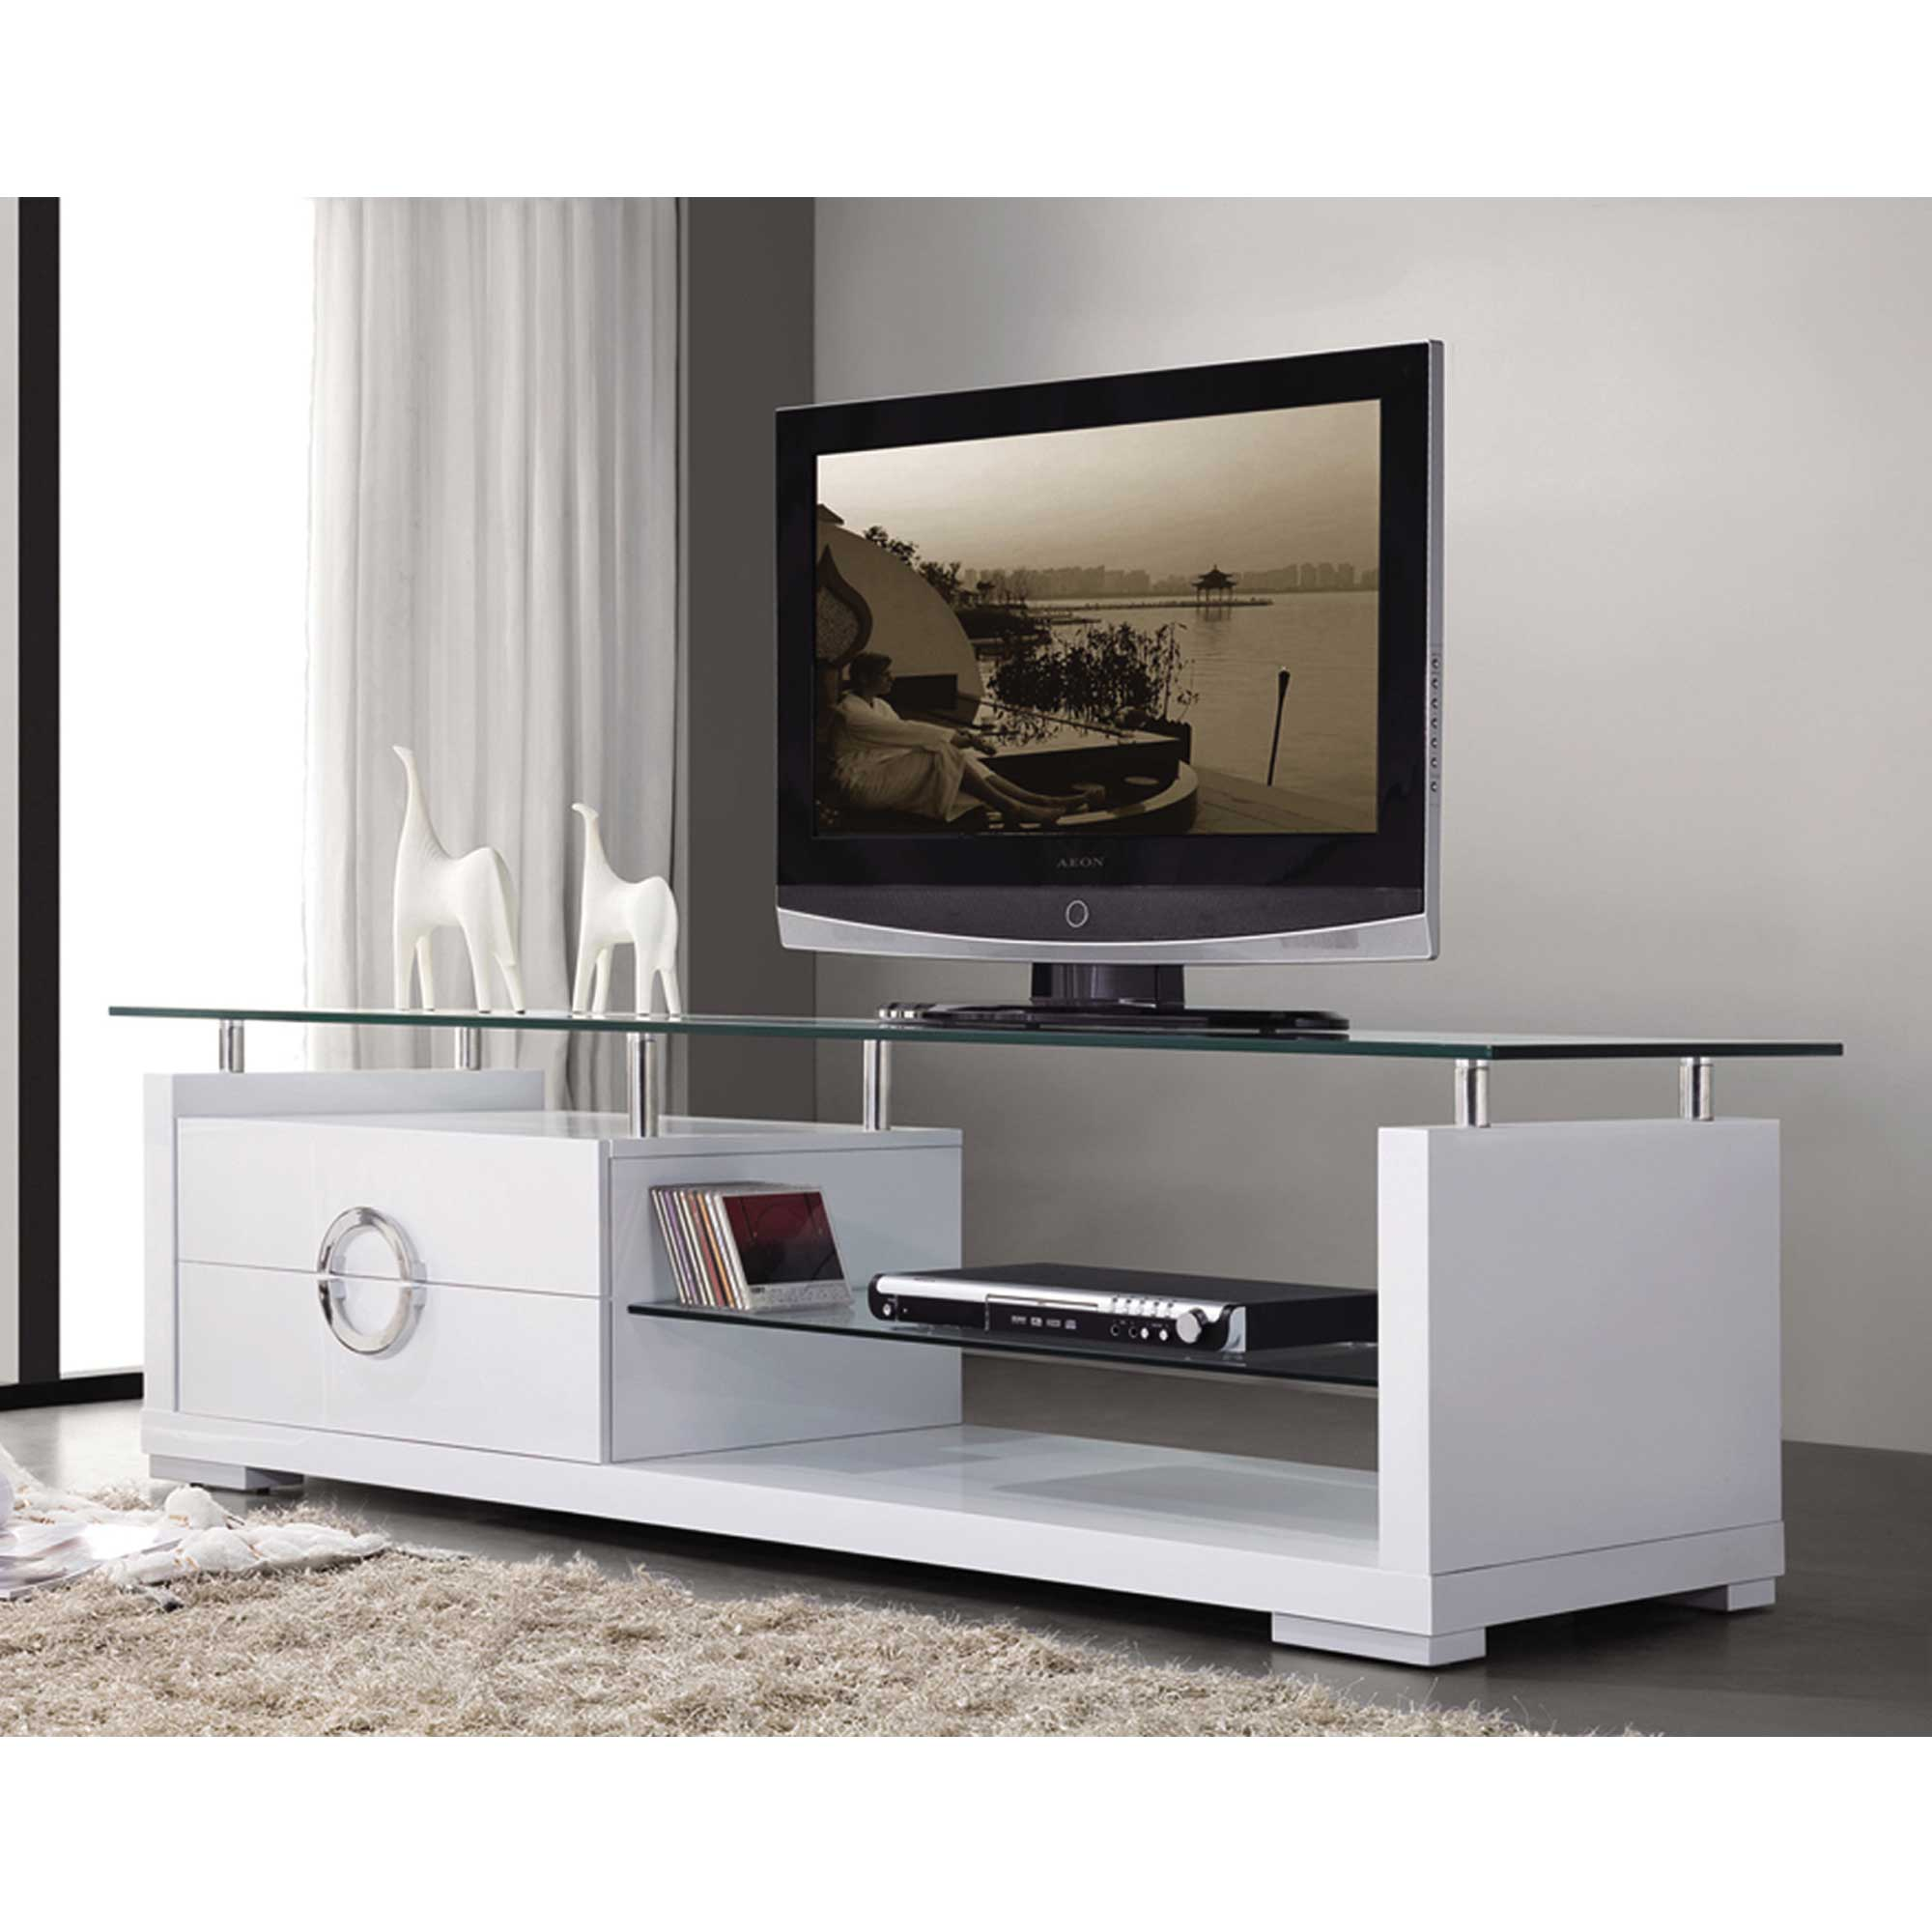 White Tv Stand Contemporary Tv Stand Home Deco